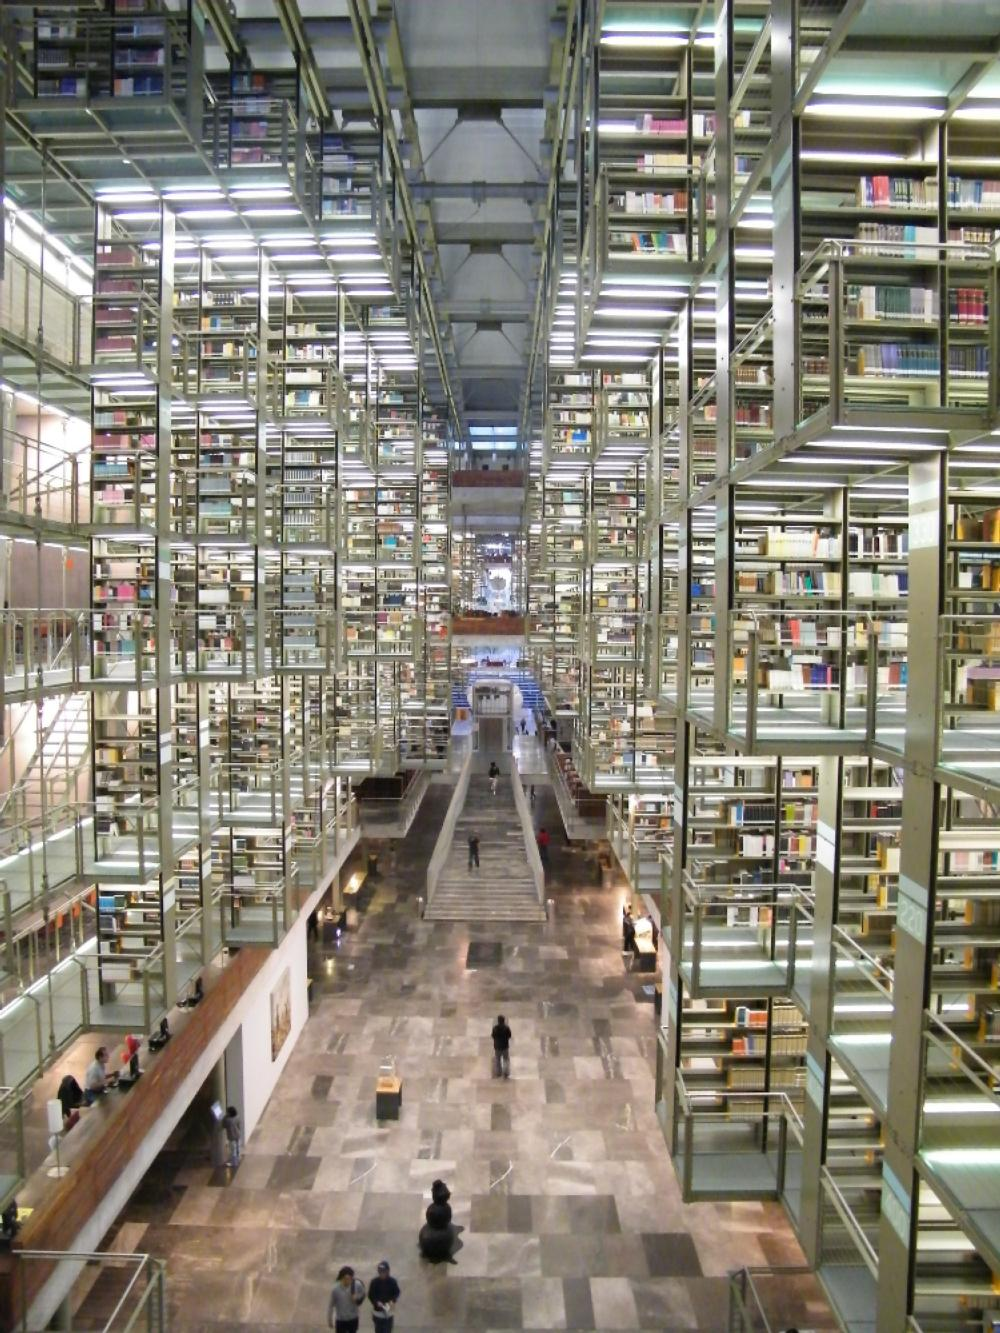 UNAM Inside Library